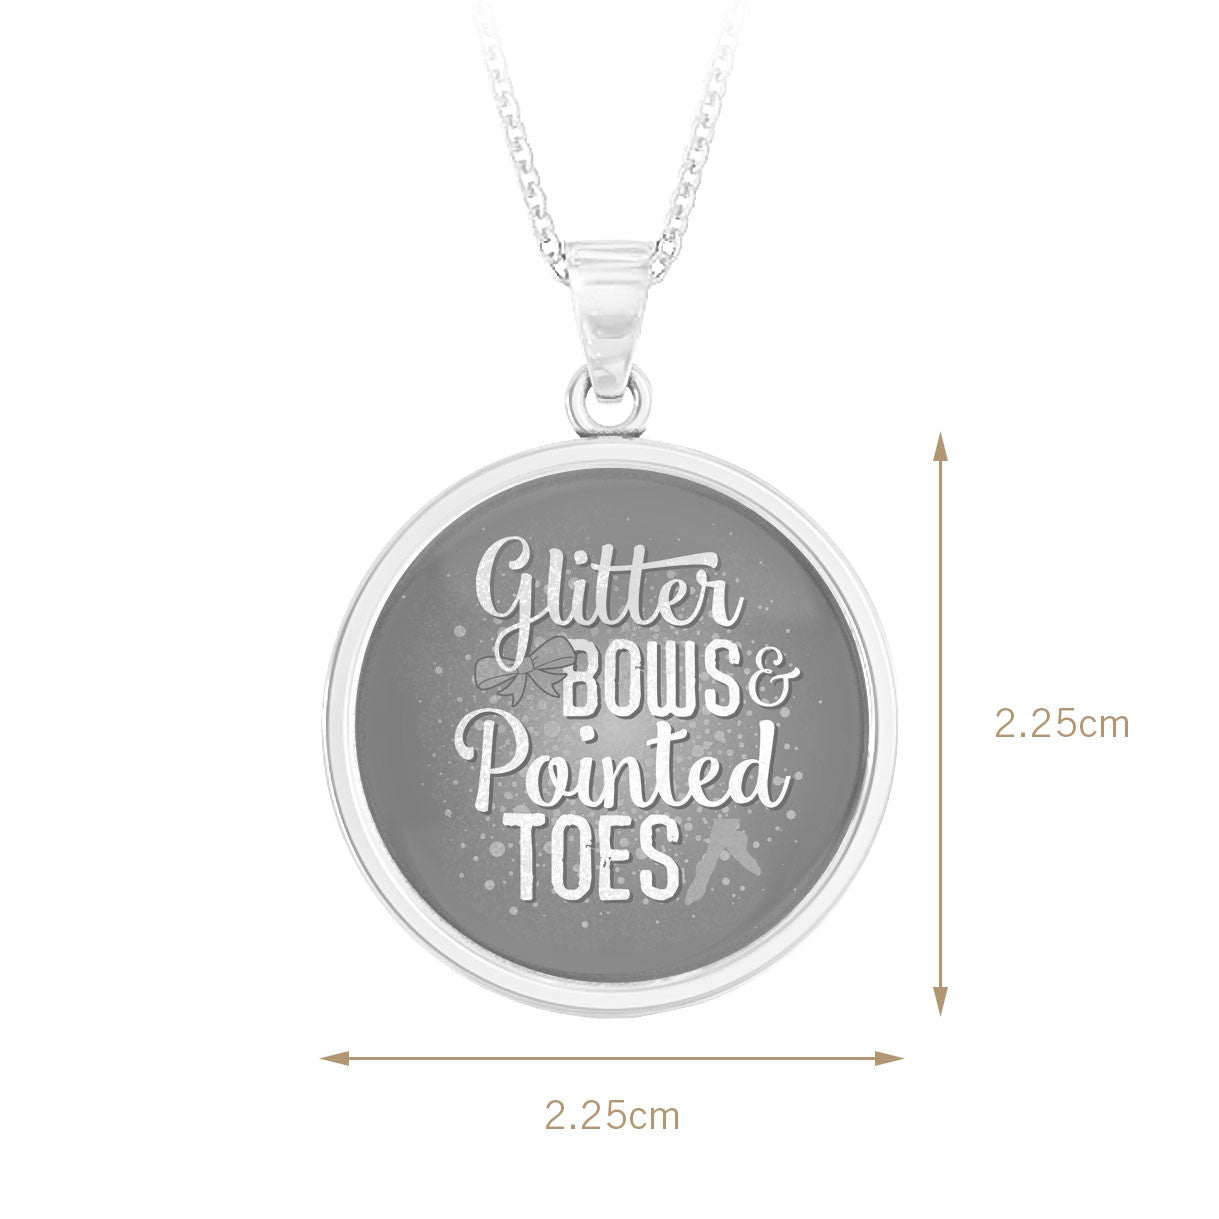 Glitter Bows & Pointed Toes Pendant